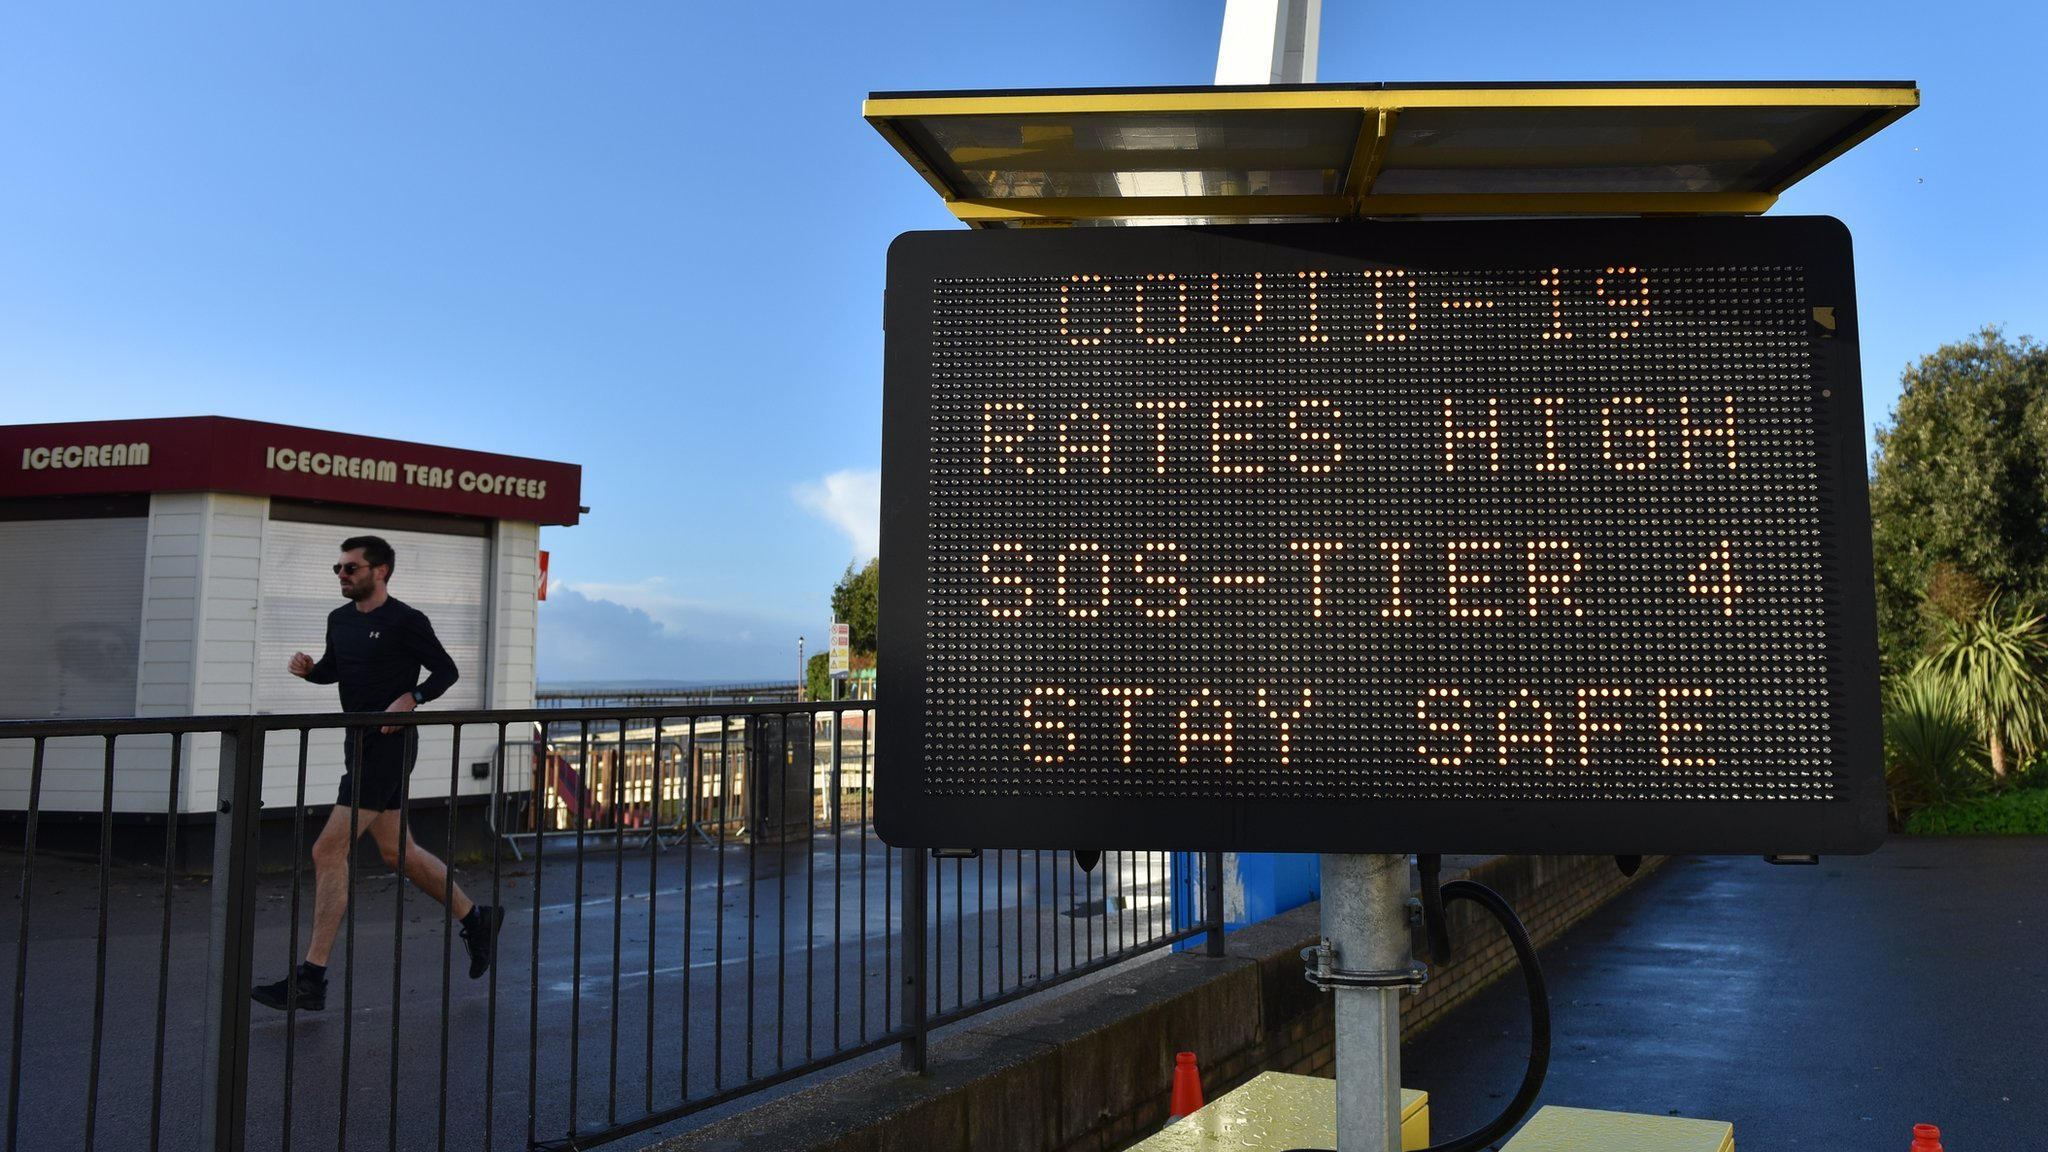 Sign warning of high case rates in Southend-on-Sea, Essex